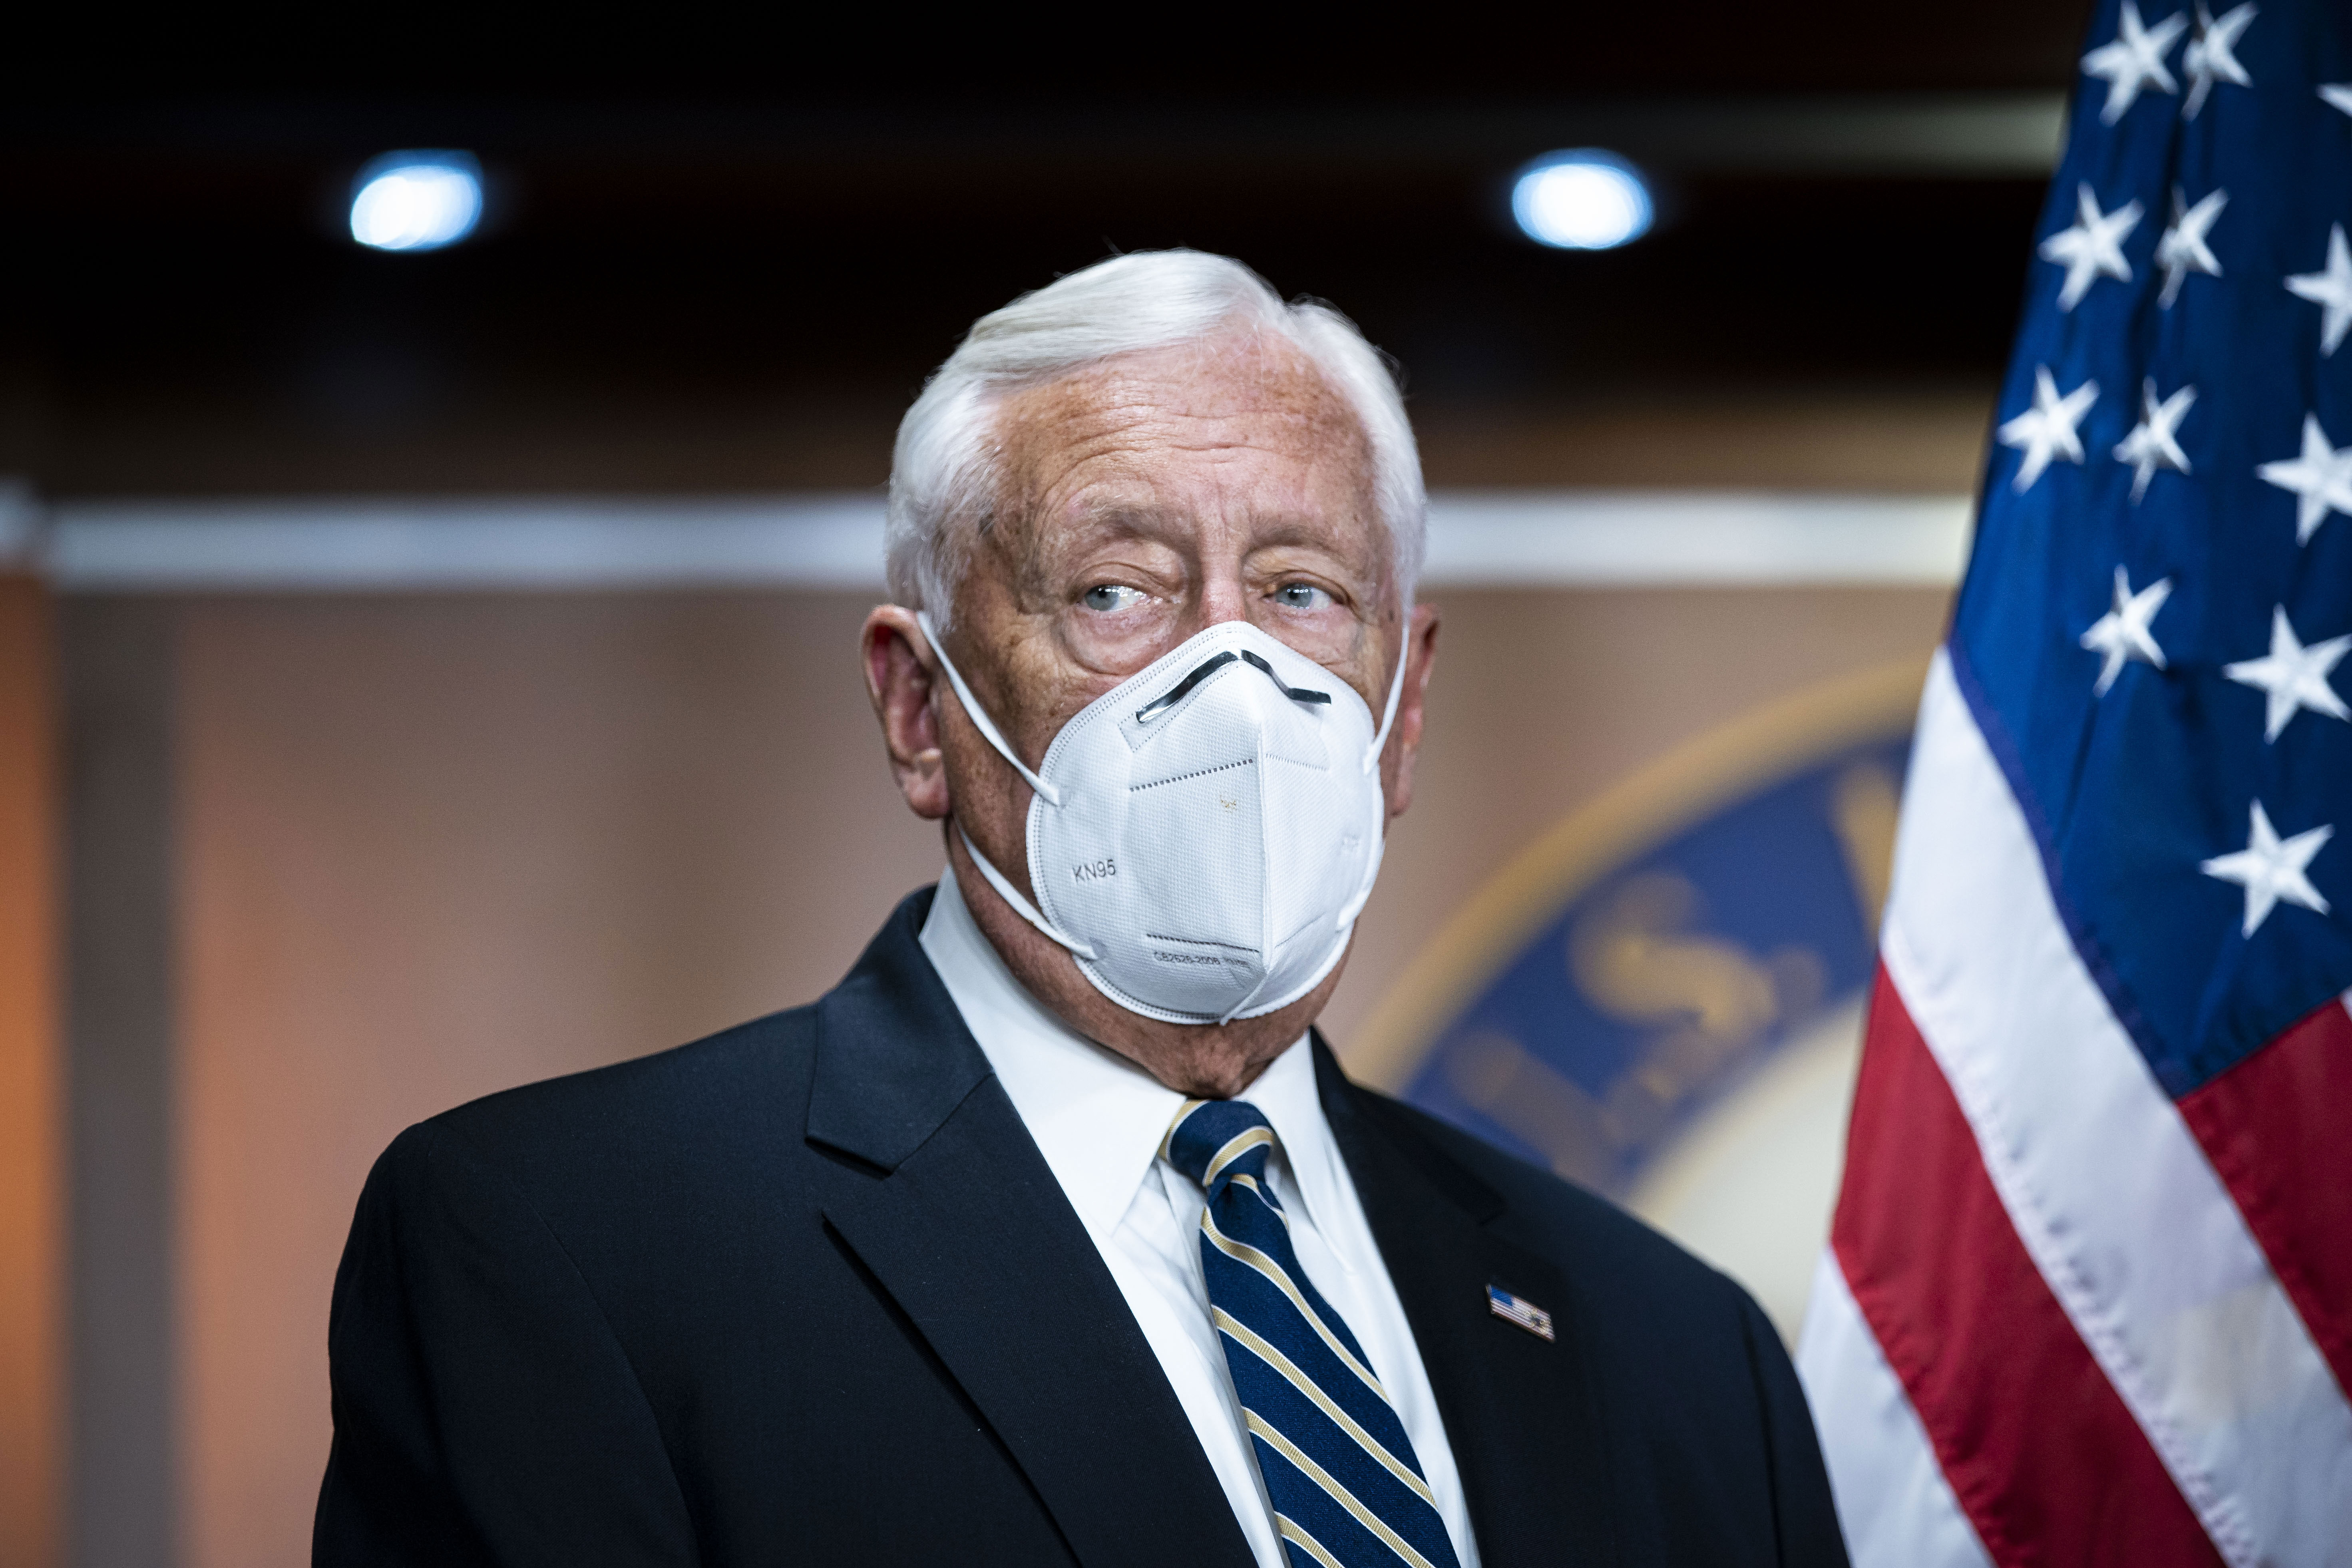 House Majority Leader Steny Hoyer attends a news conference in Washington, DC, on November 18.